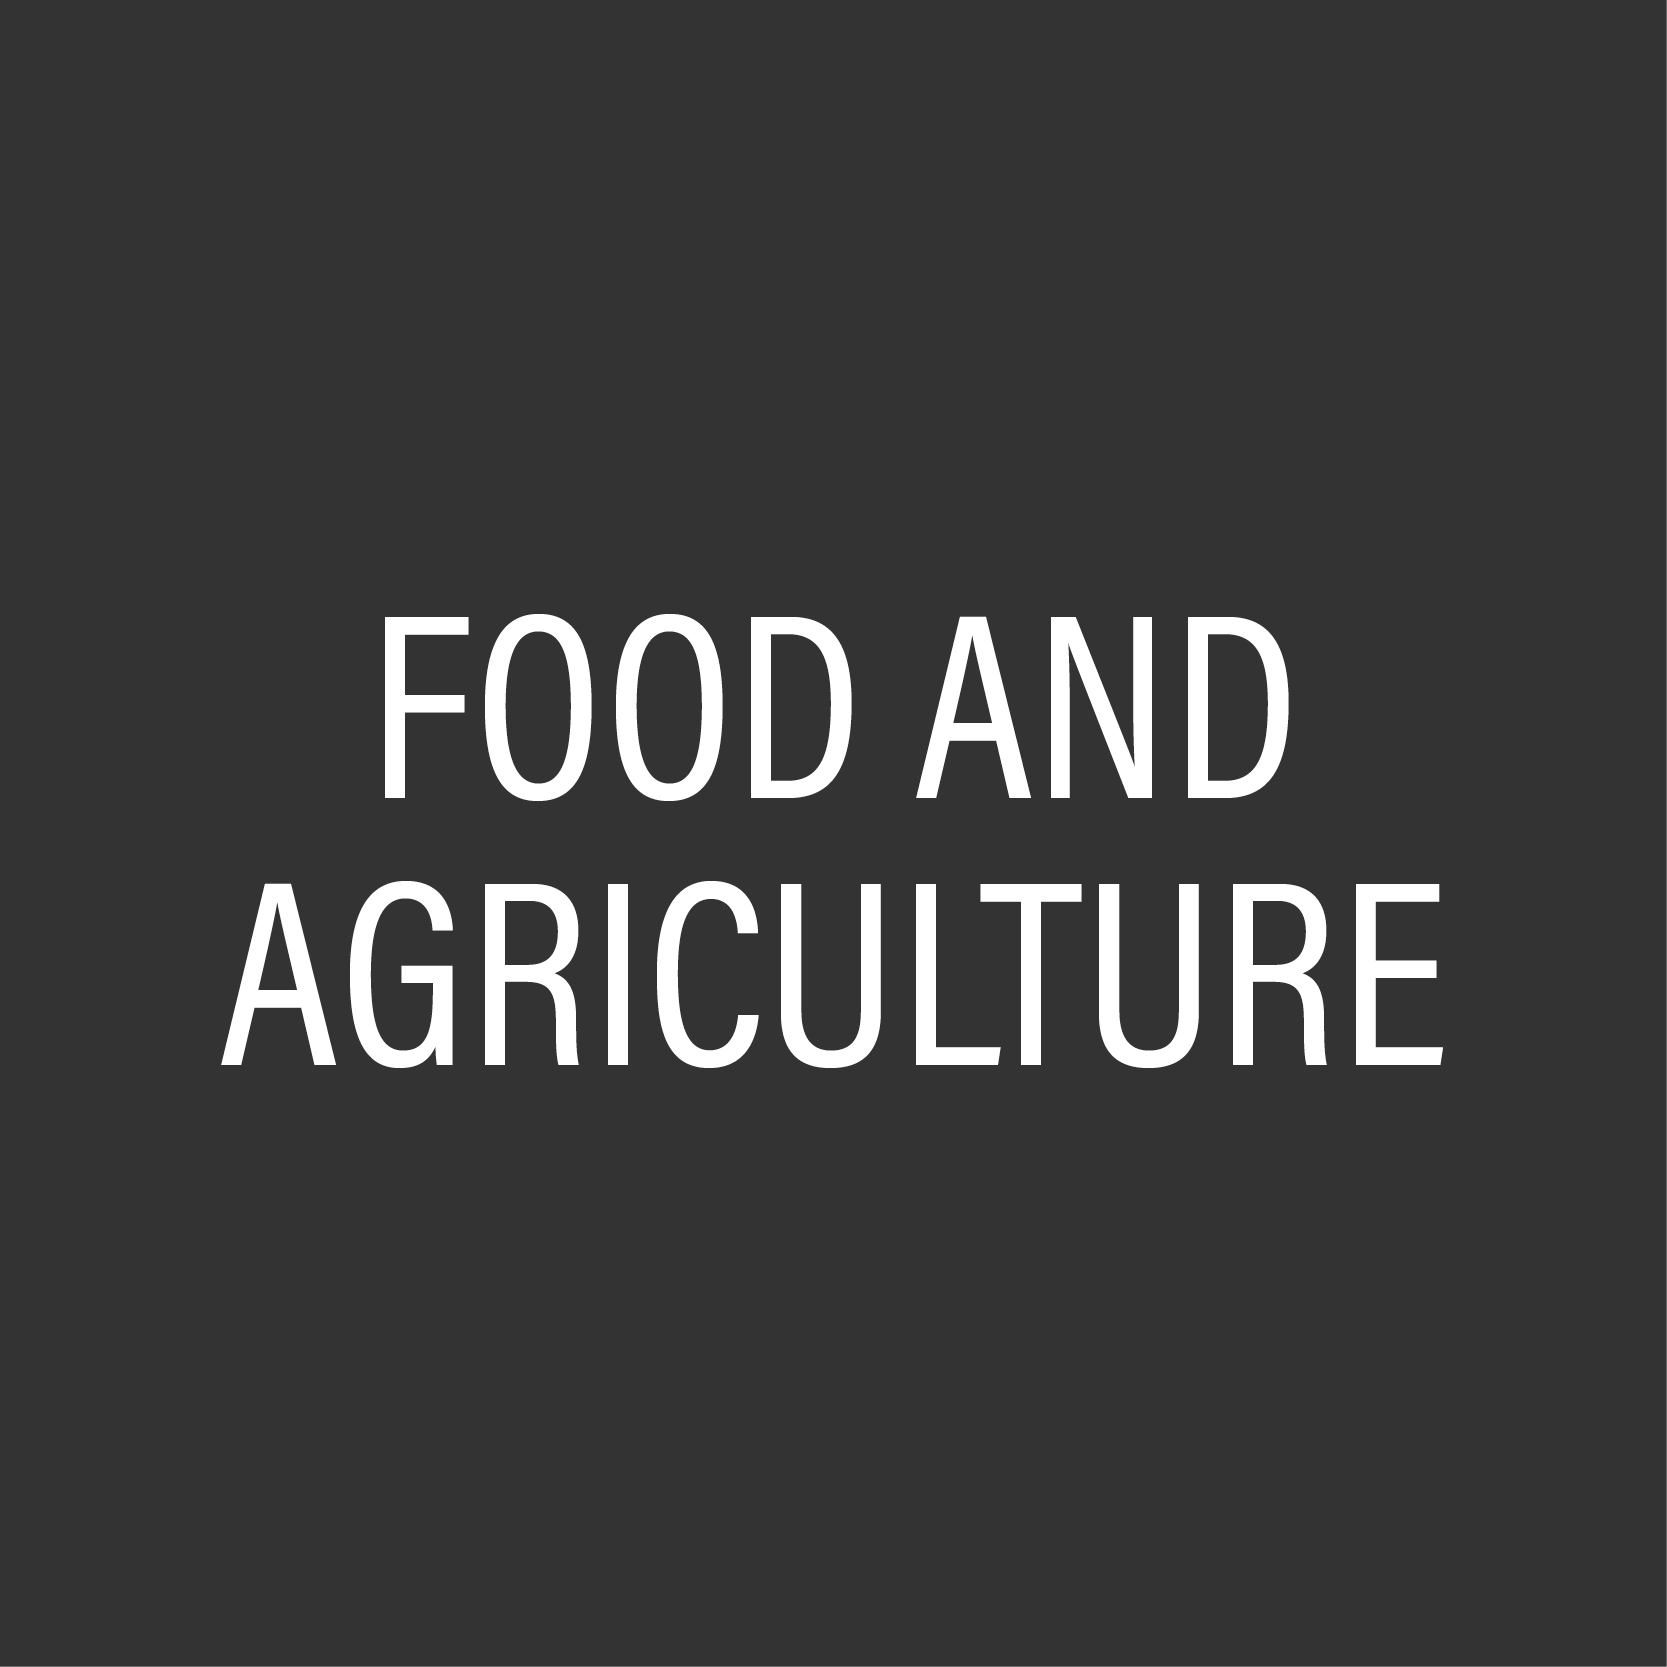 Food and Agriculture.jpg